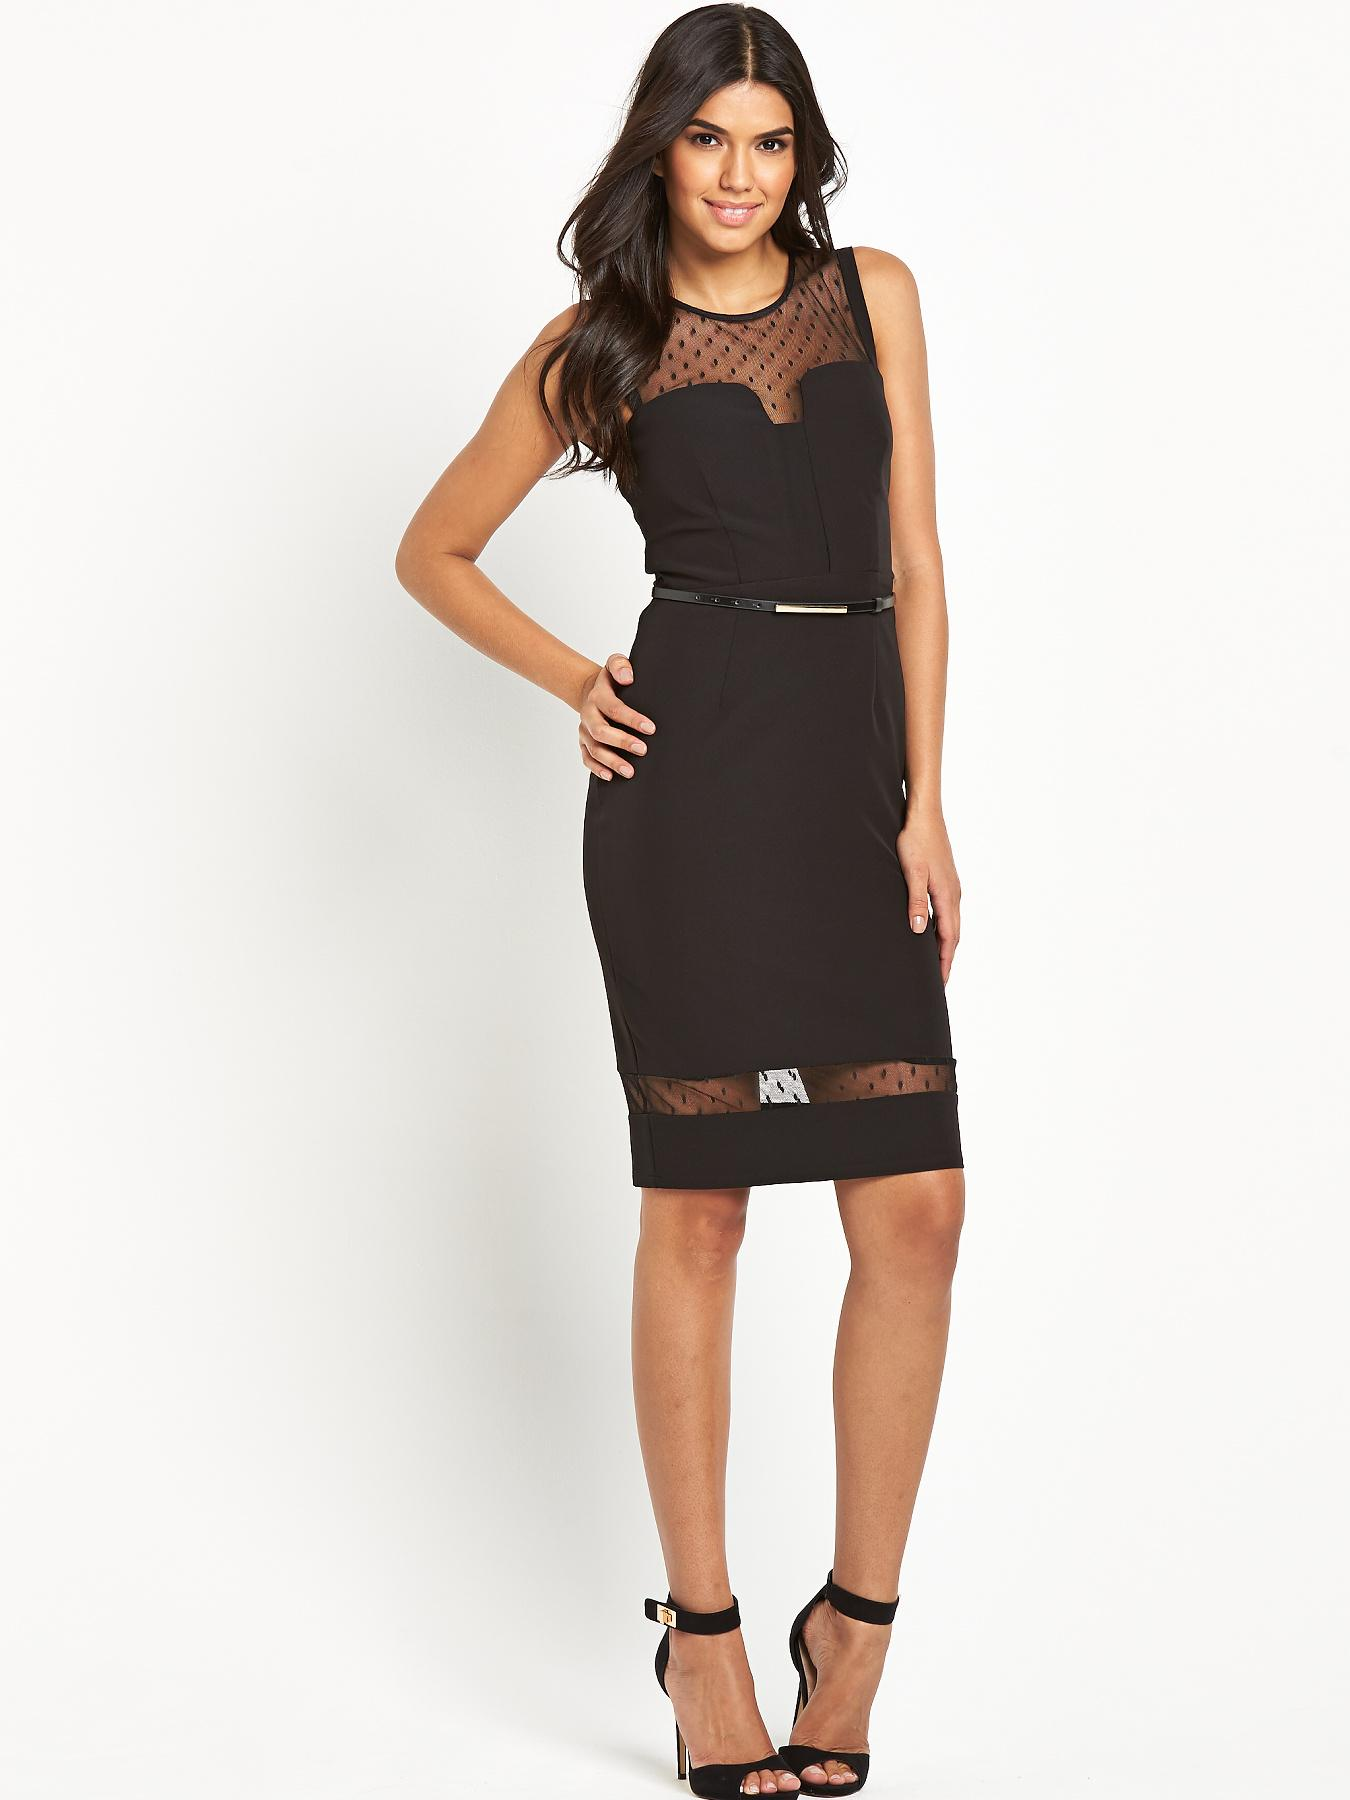 Lipsy Michelle Keegan Belted Mesh Bodycon Dress - Black, Black